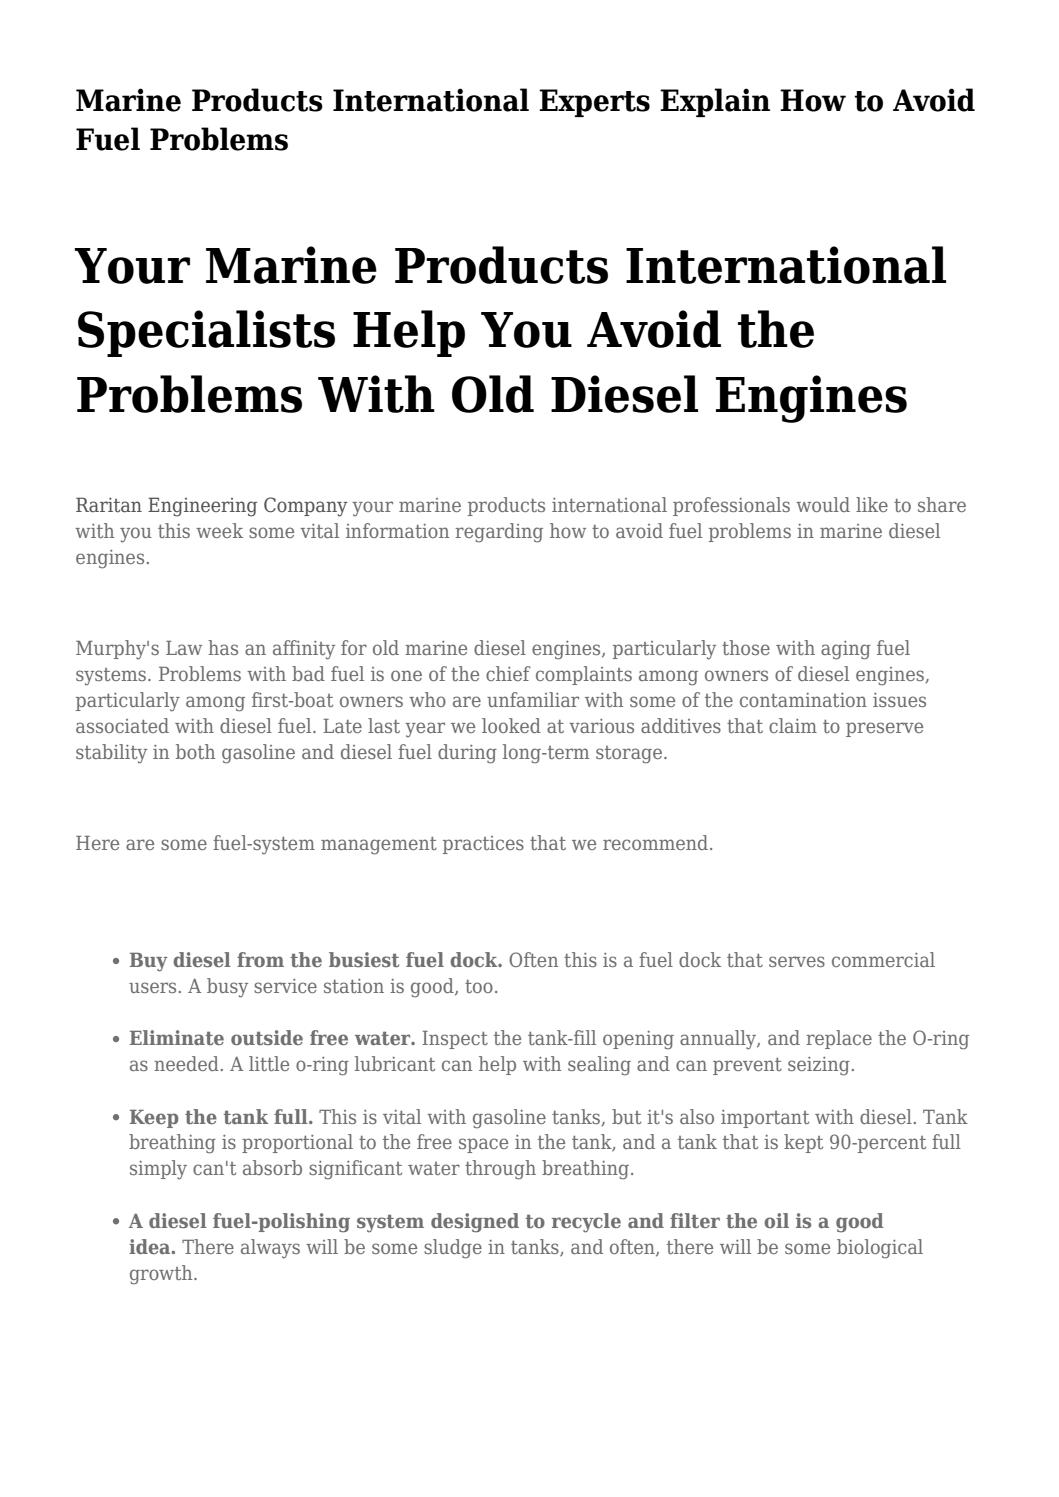 Marine Products International Experts Explain How to Avoid